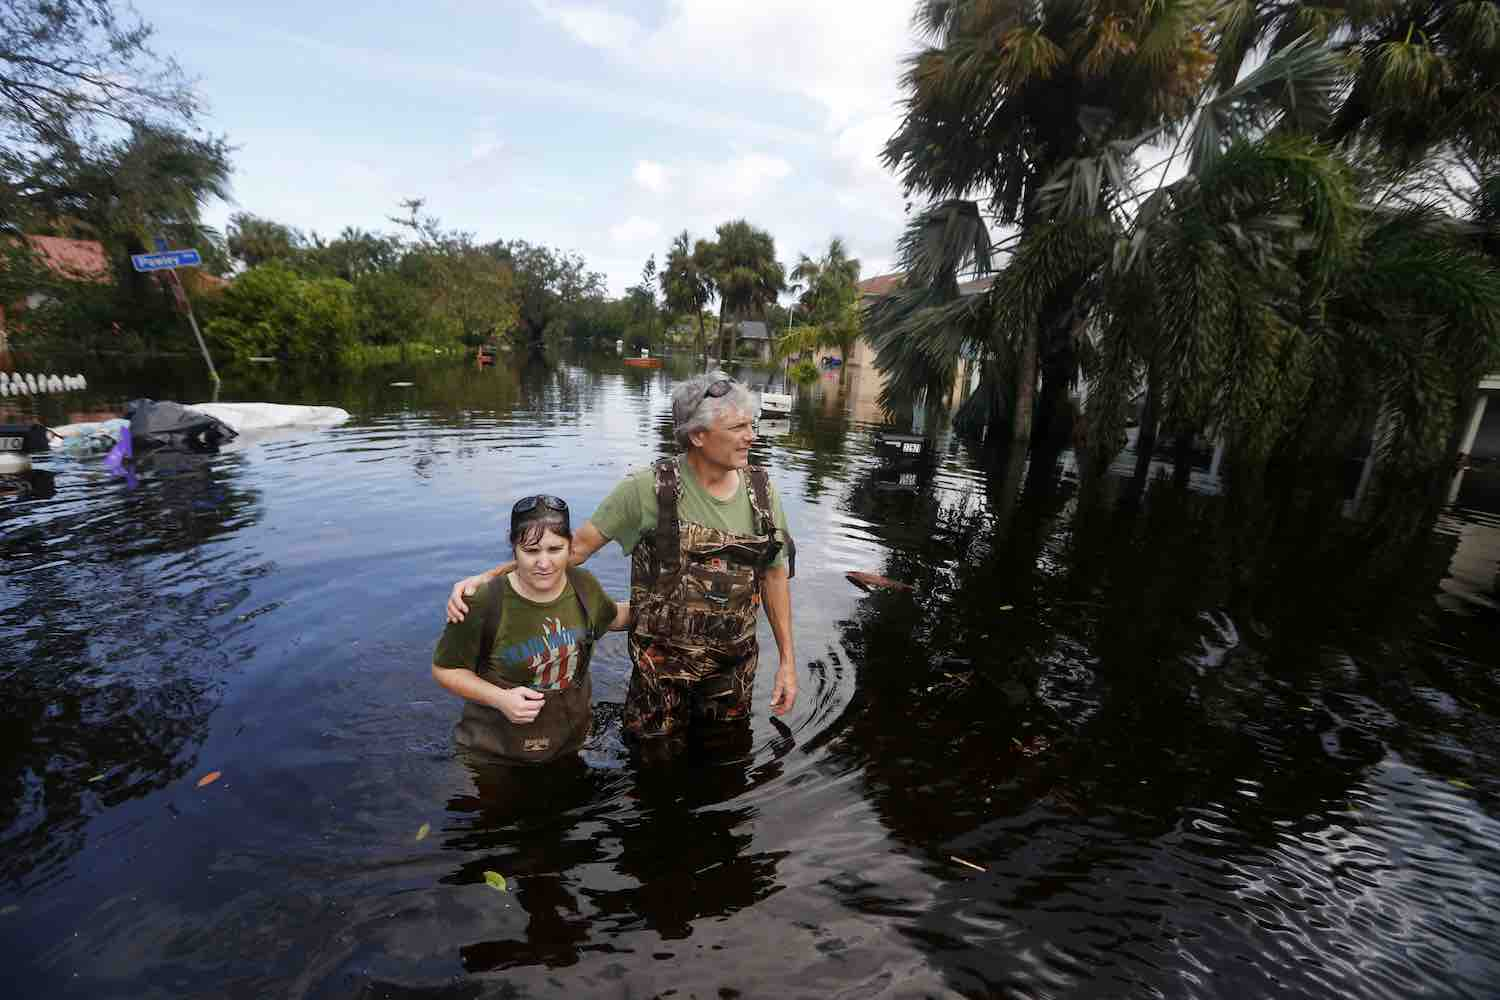 "<div class=""meta image-caption""><div class=""origin-logo origin-image kgo""><span>kgo</span></div><span class=""caption-text"">Kelly McClenthen returns to see the flood damage to her home with her boyfriend Daniel Harrison in the aftermath of Hurricane Irma in Bonita Springs, Fla., Monday, Sept. 11, 2017. (AP Photo/Gerald Herbert)</span></div>"